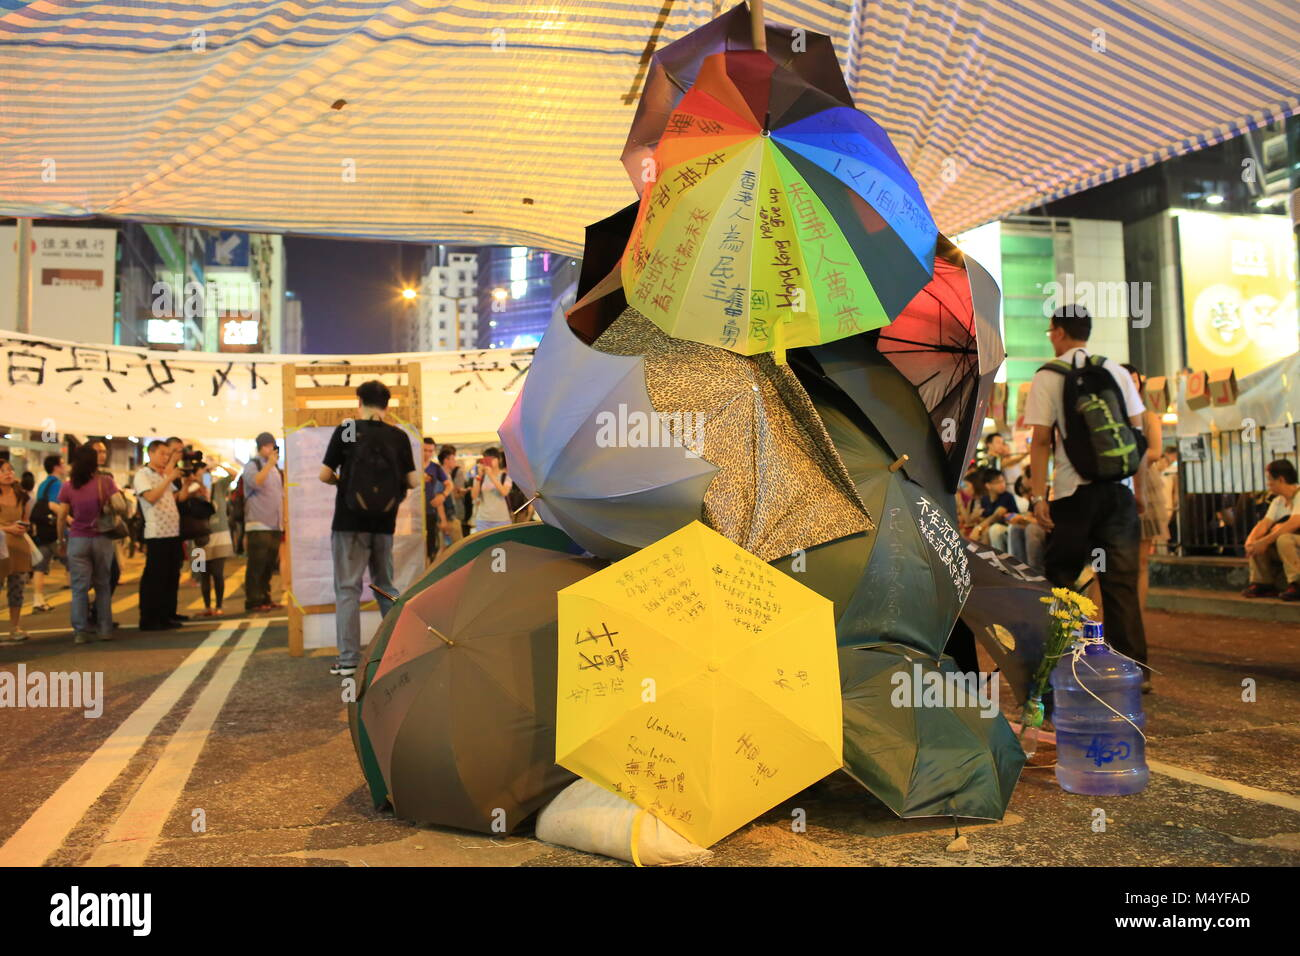 HONG KONG,OCT. 12:people hang the yellow umbrella, symbol of revolution in ocuppy protest  in Mong Kok on 12 october - Stock Image